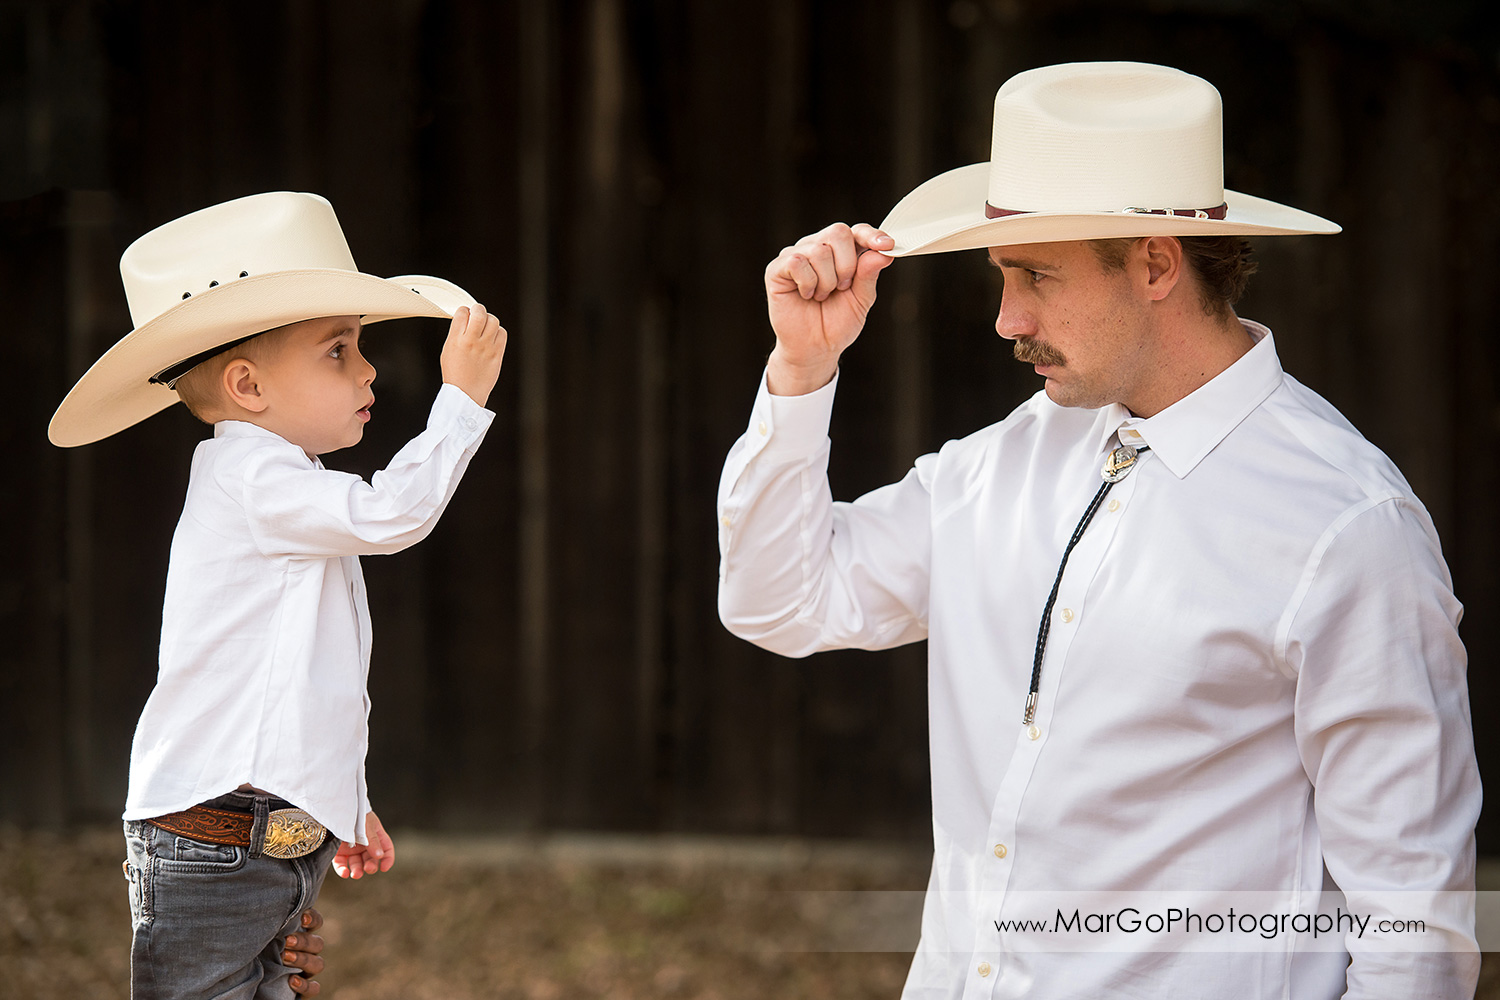 man and little boy in white shirts, gray jeans and cowboy hats looking at each other in Shinn Historical Park and Arboretum in Fremont